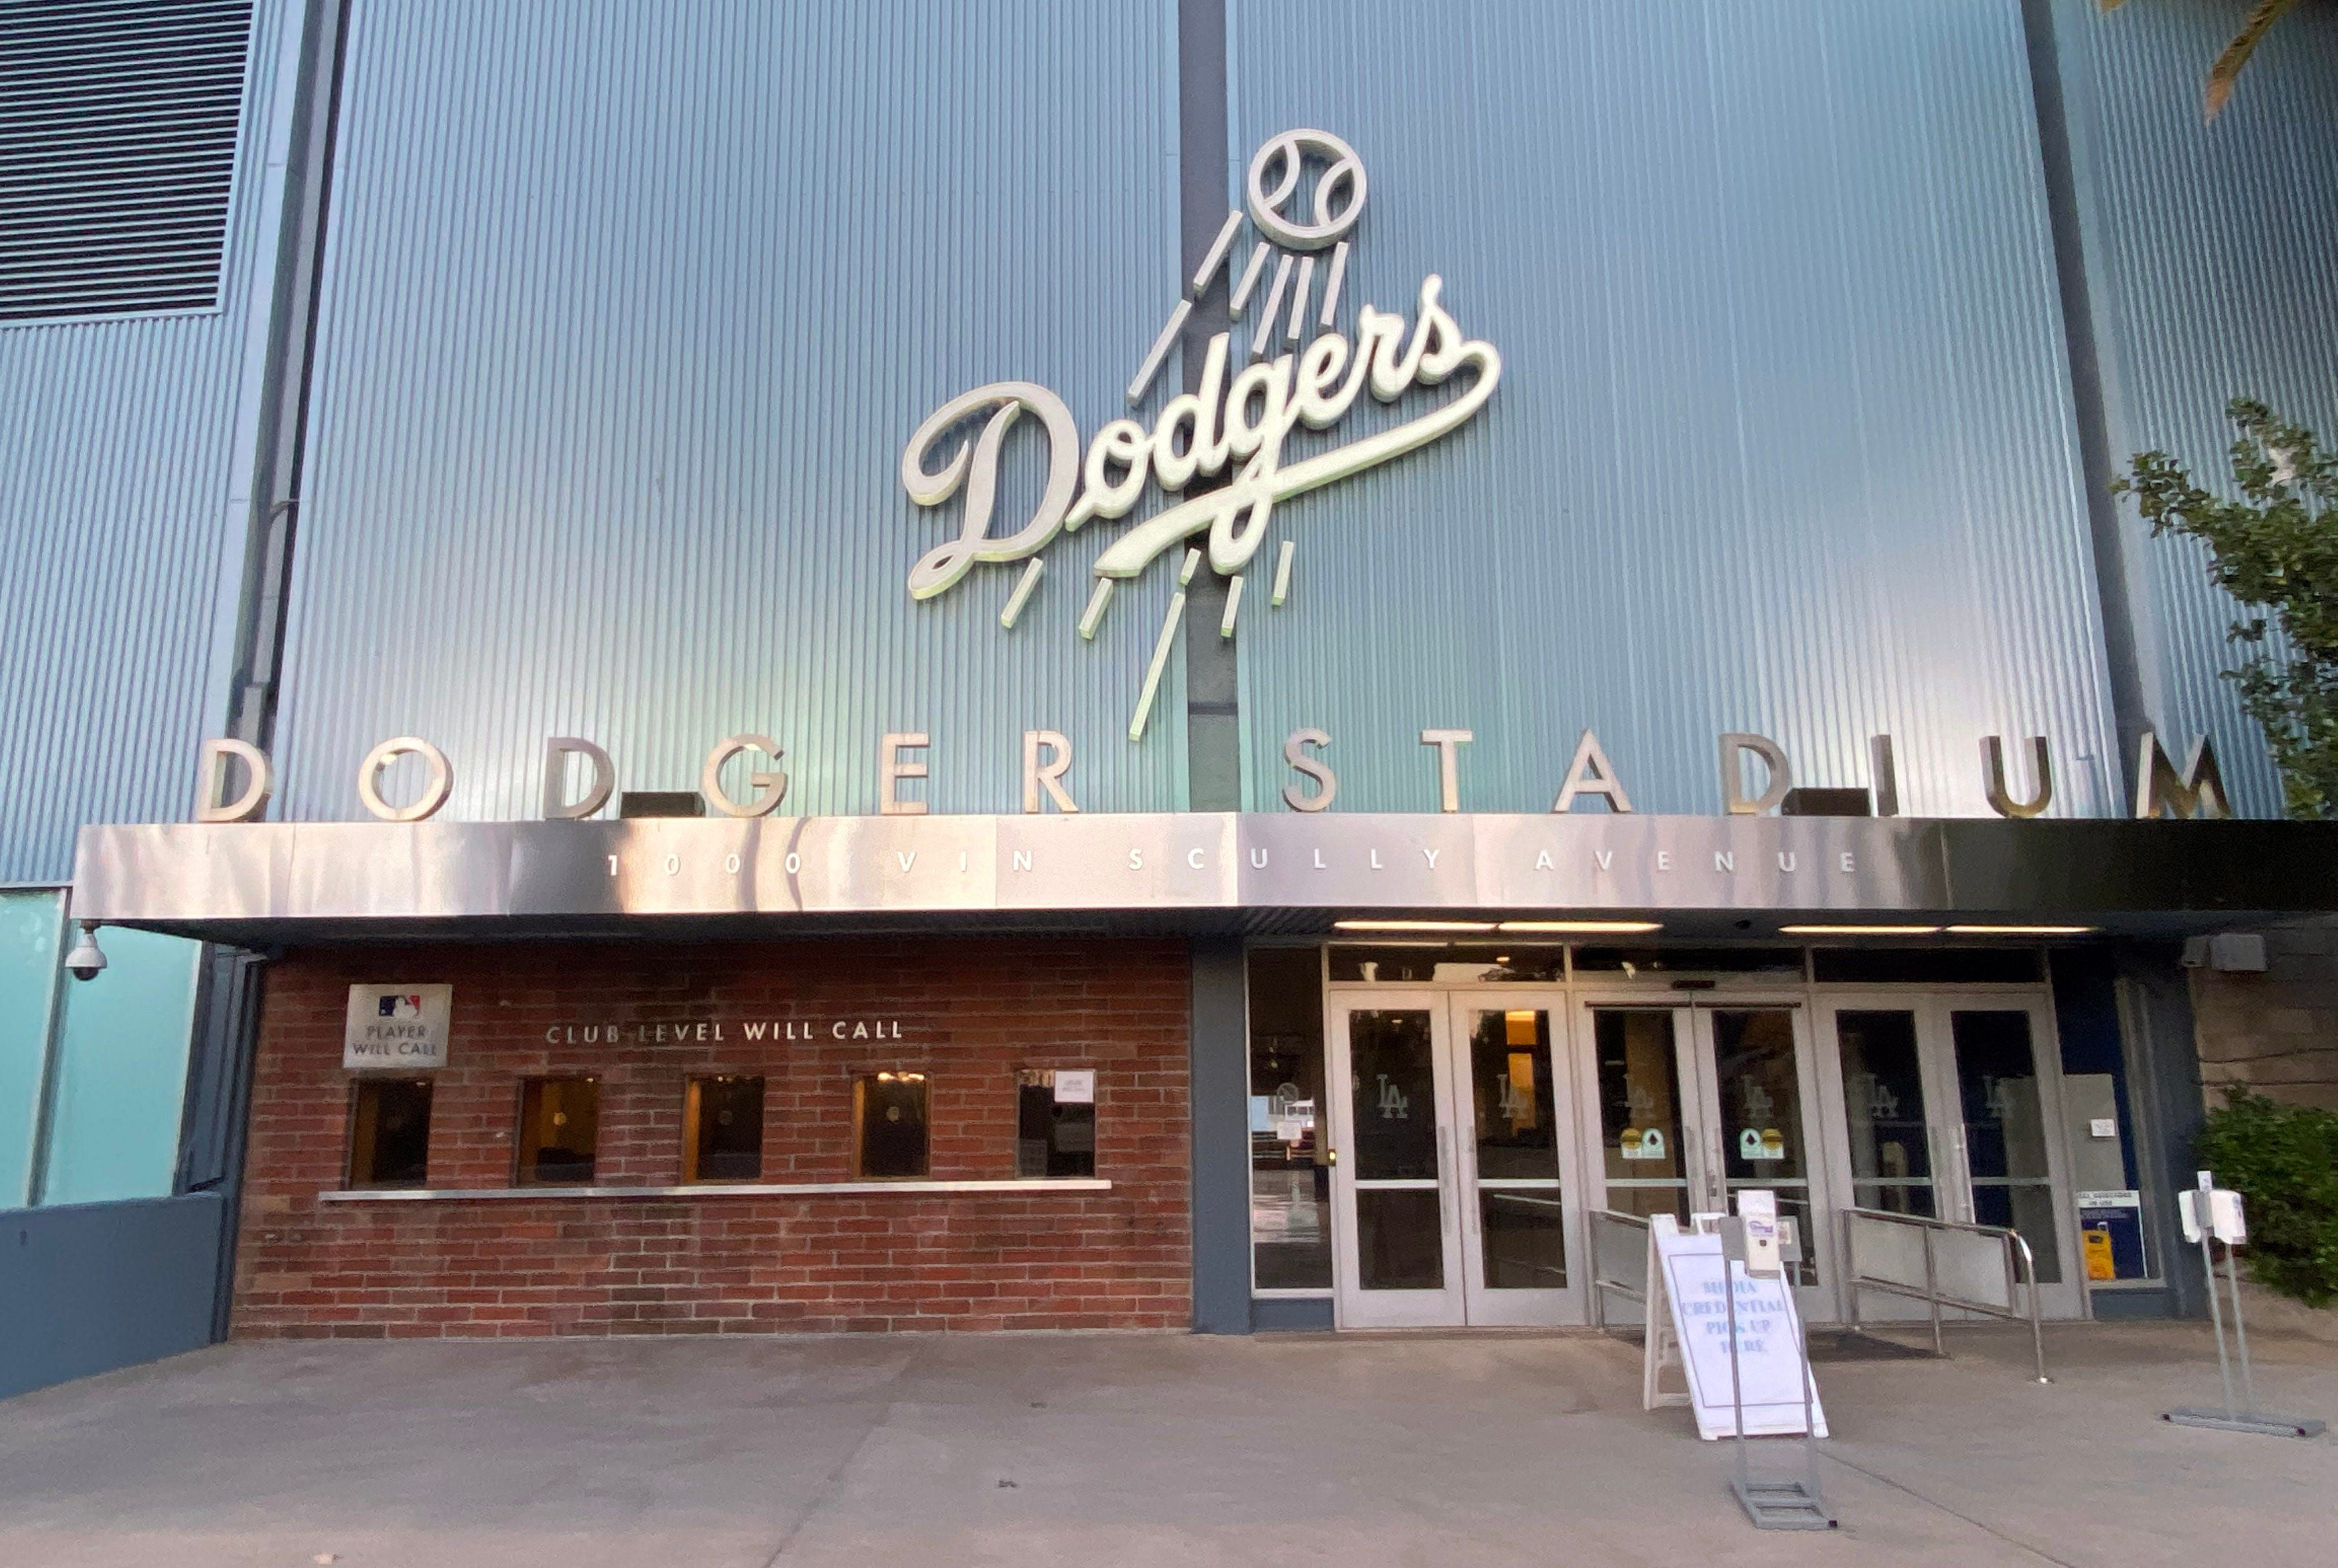 LeBron James Los Angeles Dodgers join forces to make